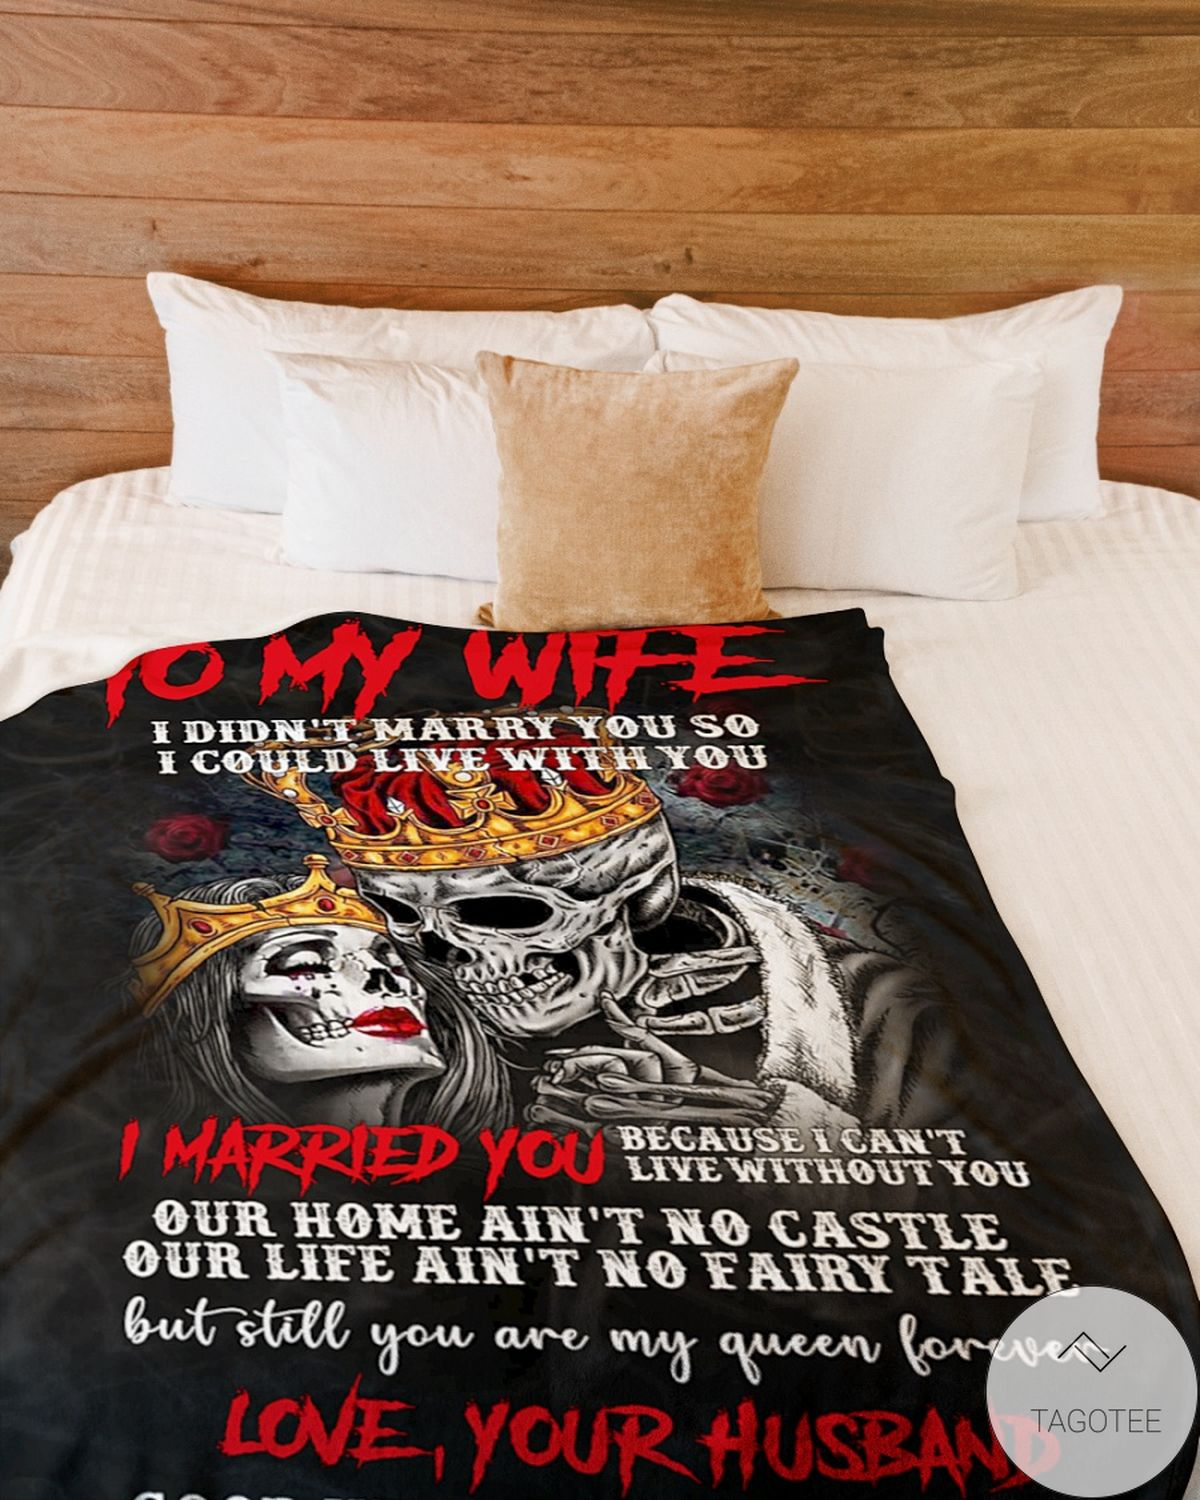 Vibrant To My Wife I Marry You Because I Can't Live Without You Blanket